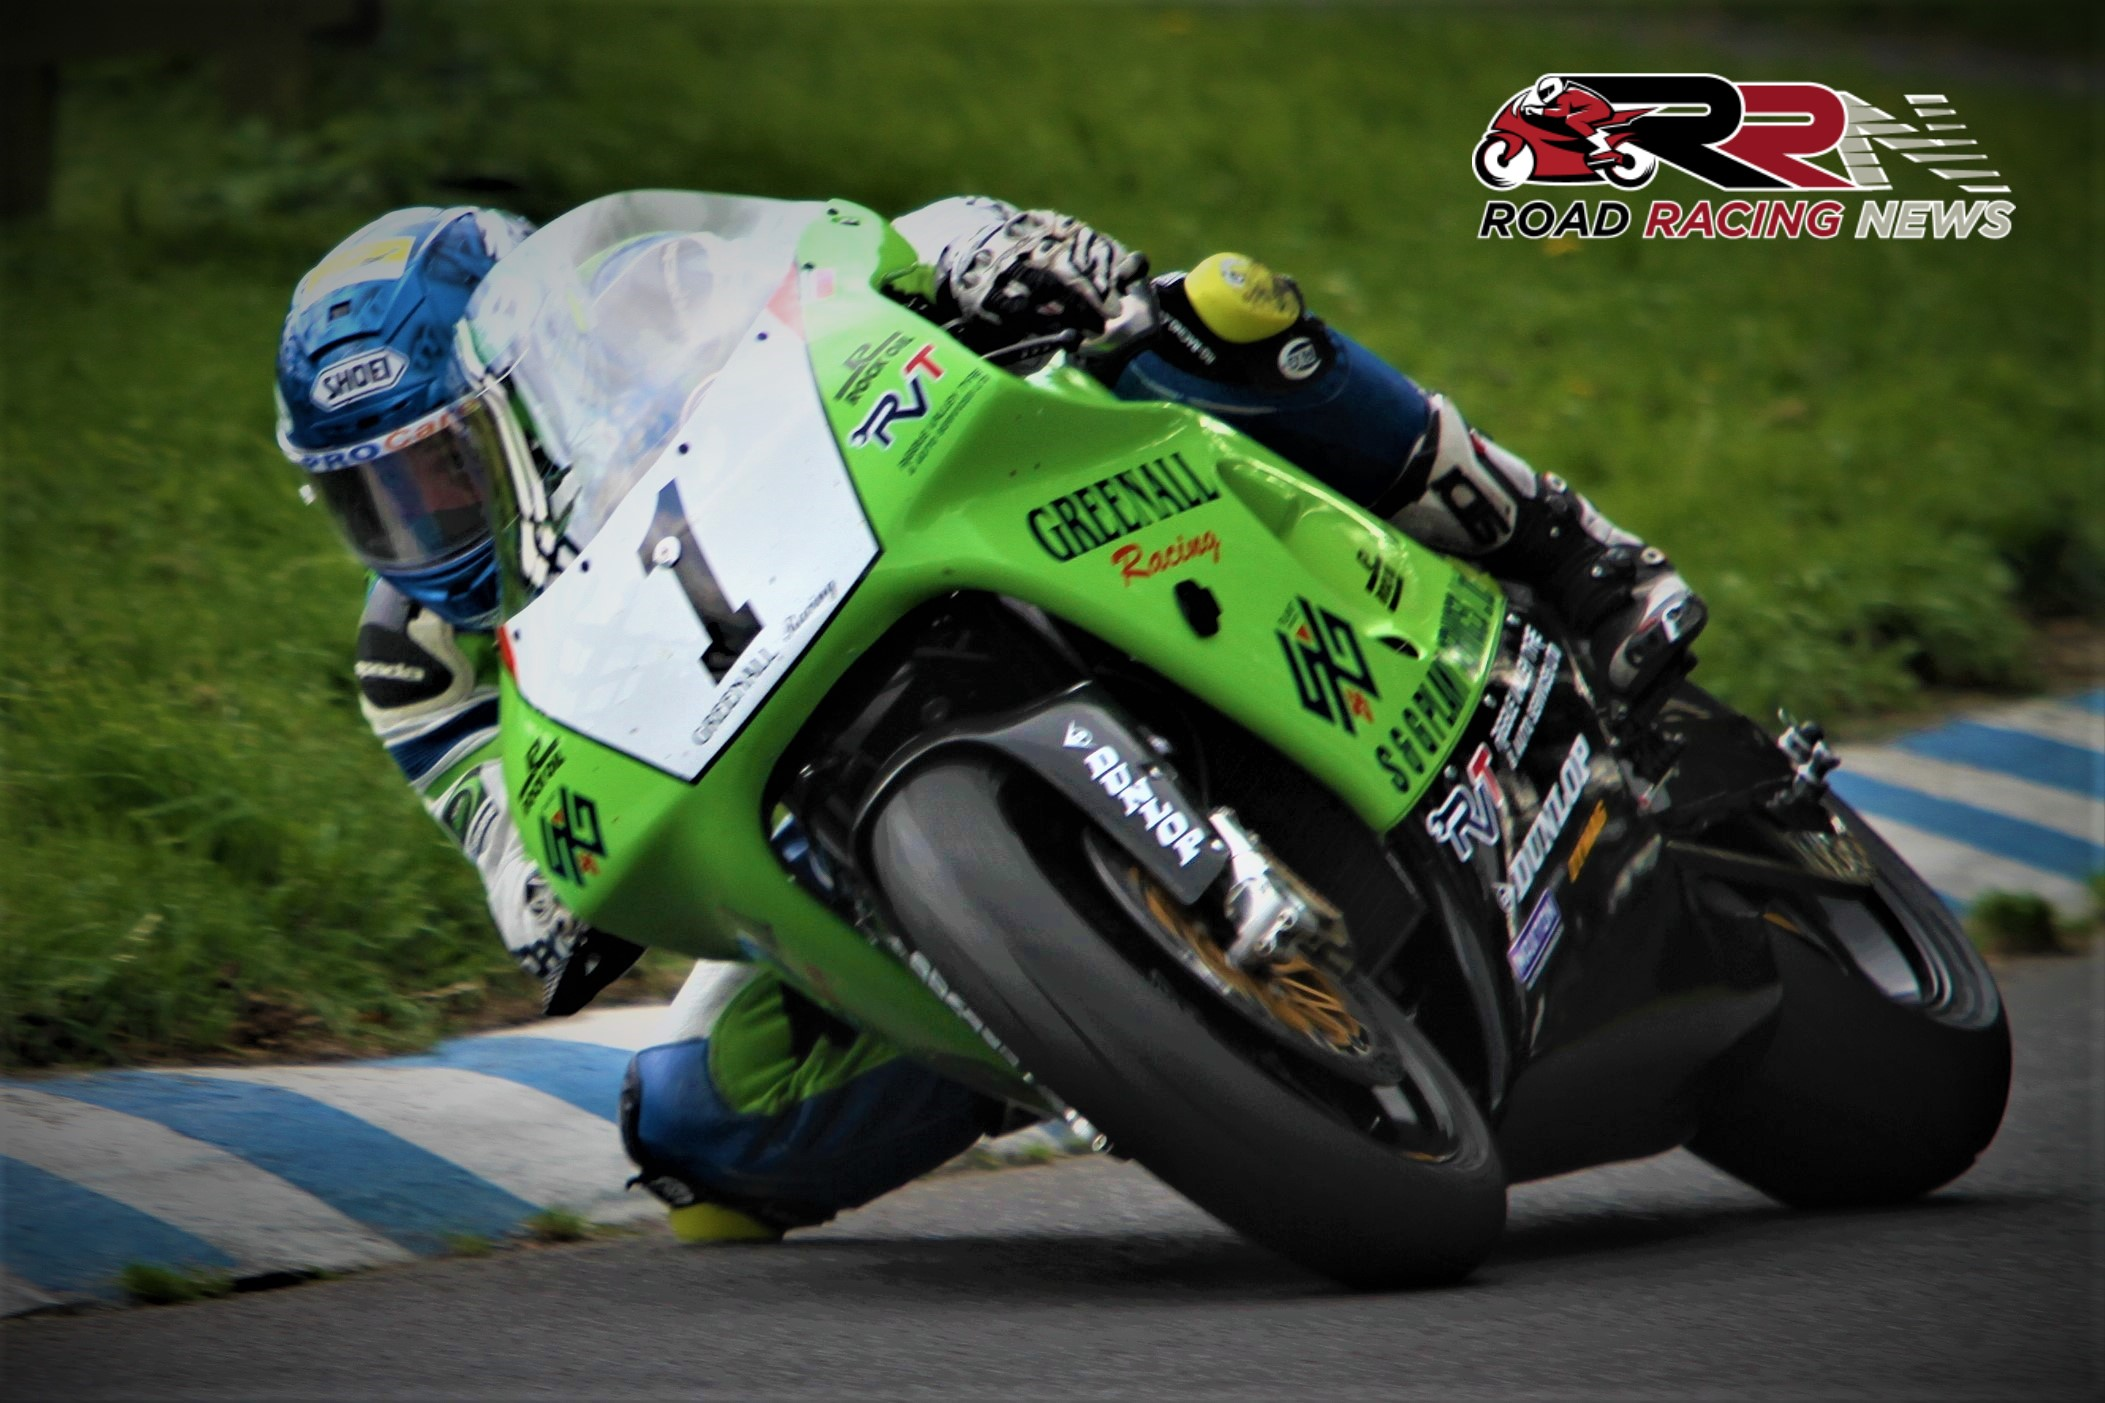 69th Scarborough Gold Cup: Qualifying Wrap Up